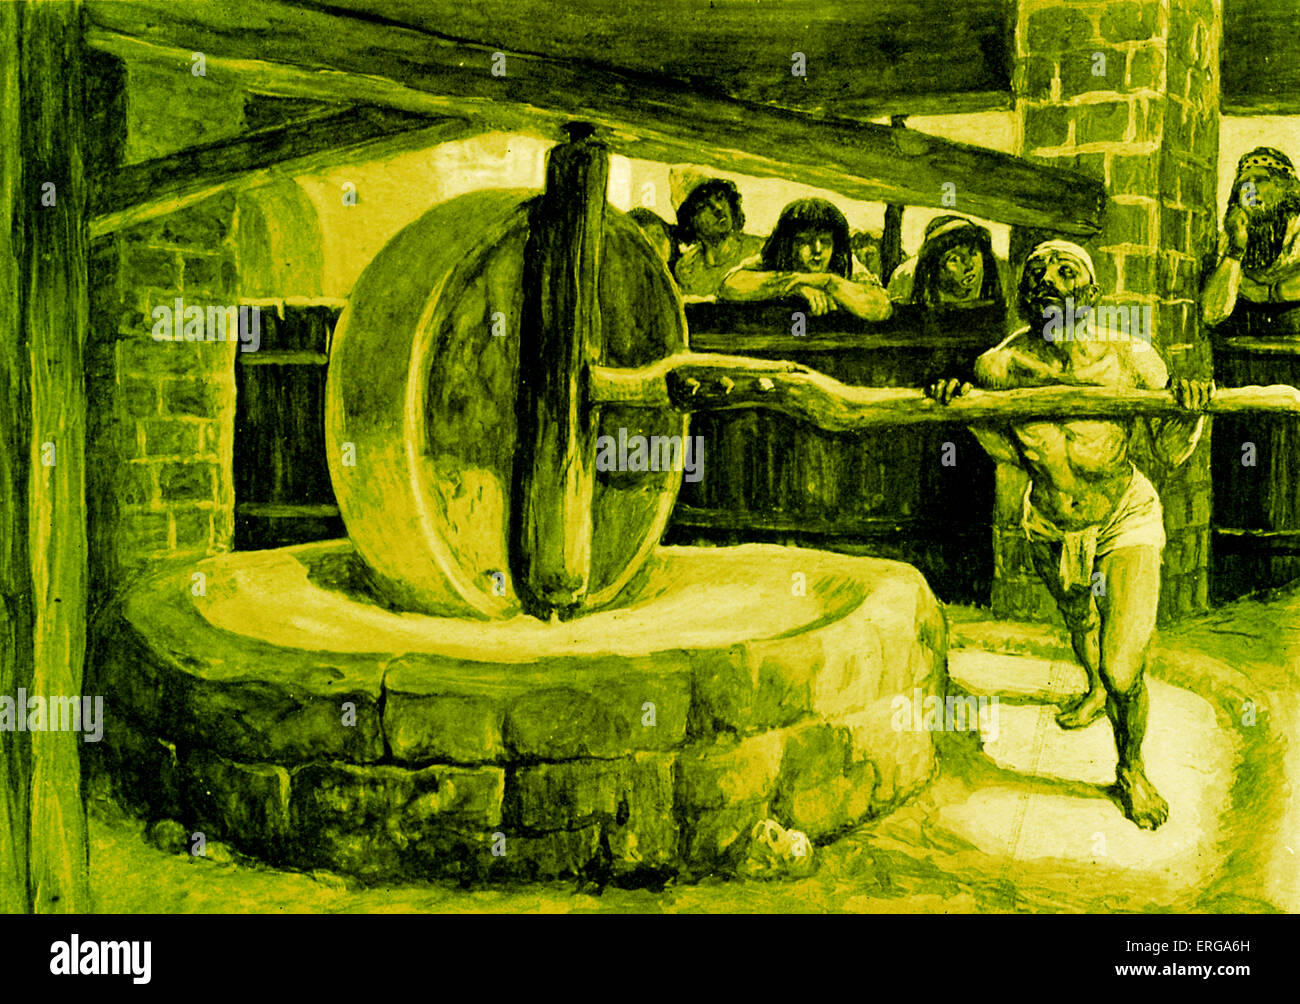 'Samson turns the mill in prison' by J James Tissot. Illustration to Book of Judges, 16.21: 'But the - Stock Image